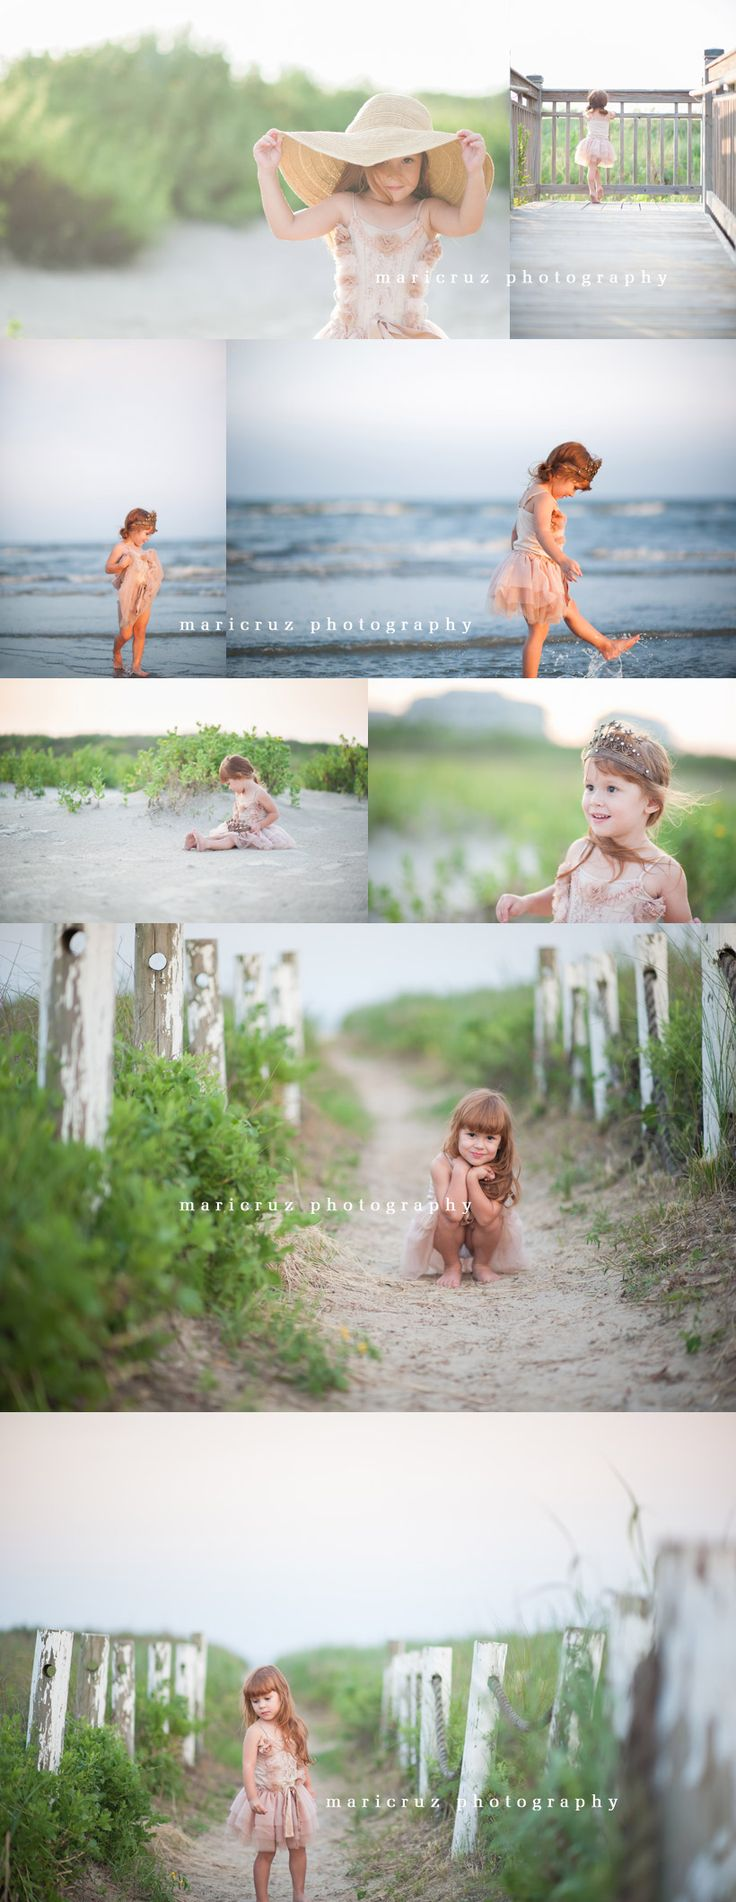 Beach photo ideas. Courtesy of Galveston TX Child Photographer. #beach #togally #photo